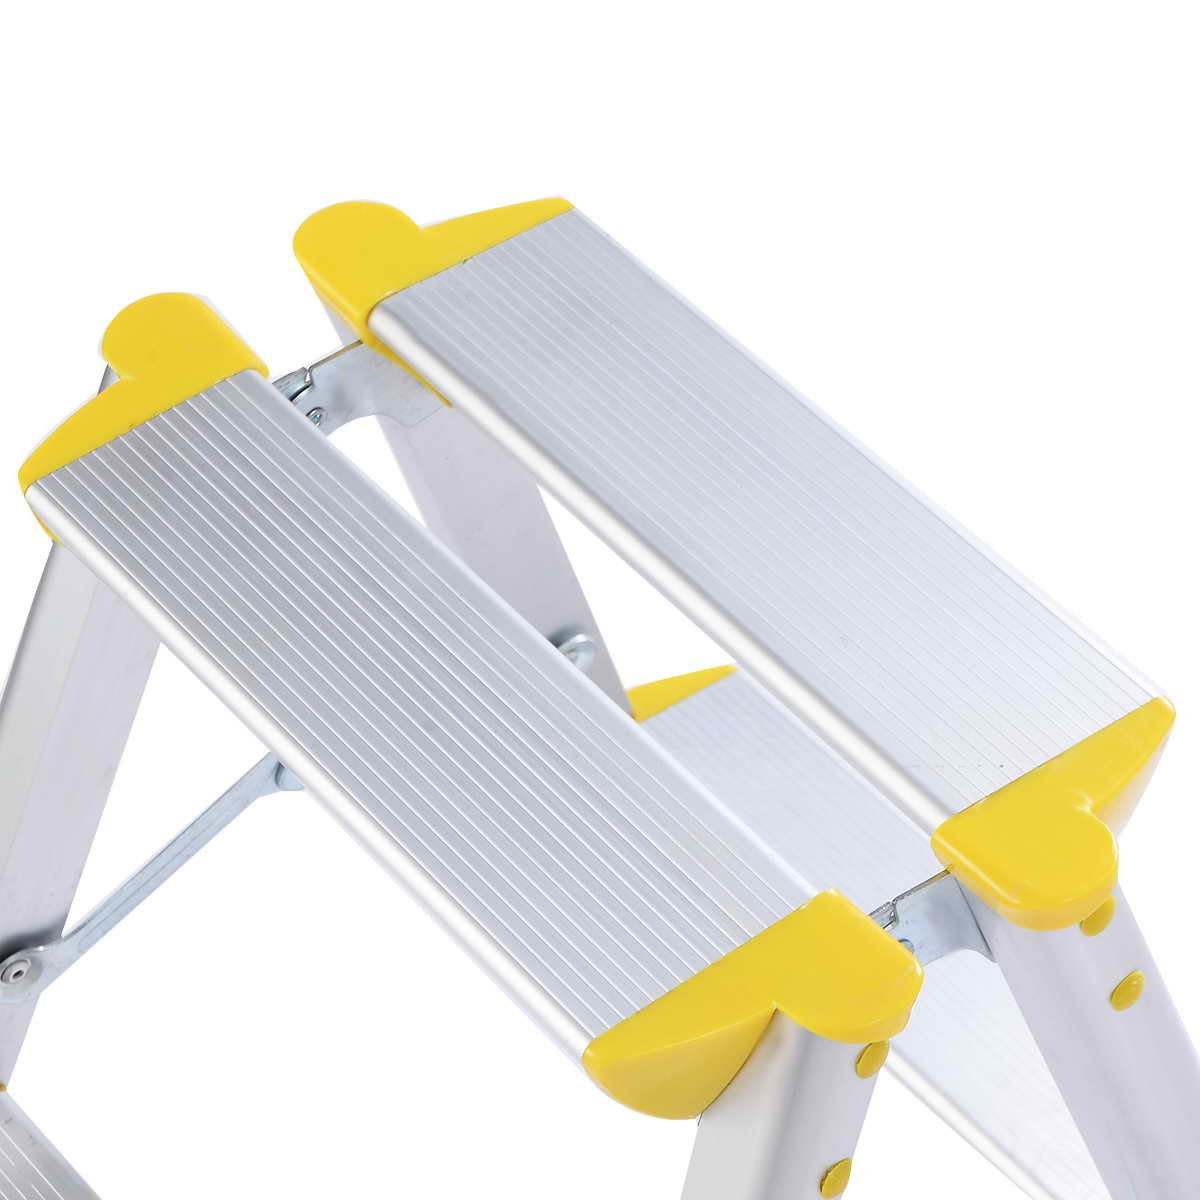 Safeplus 2 Step Aluminum Ladder Folding Platform Work Stool 330 lbs Load Capacity (Style-01)